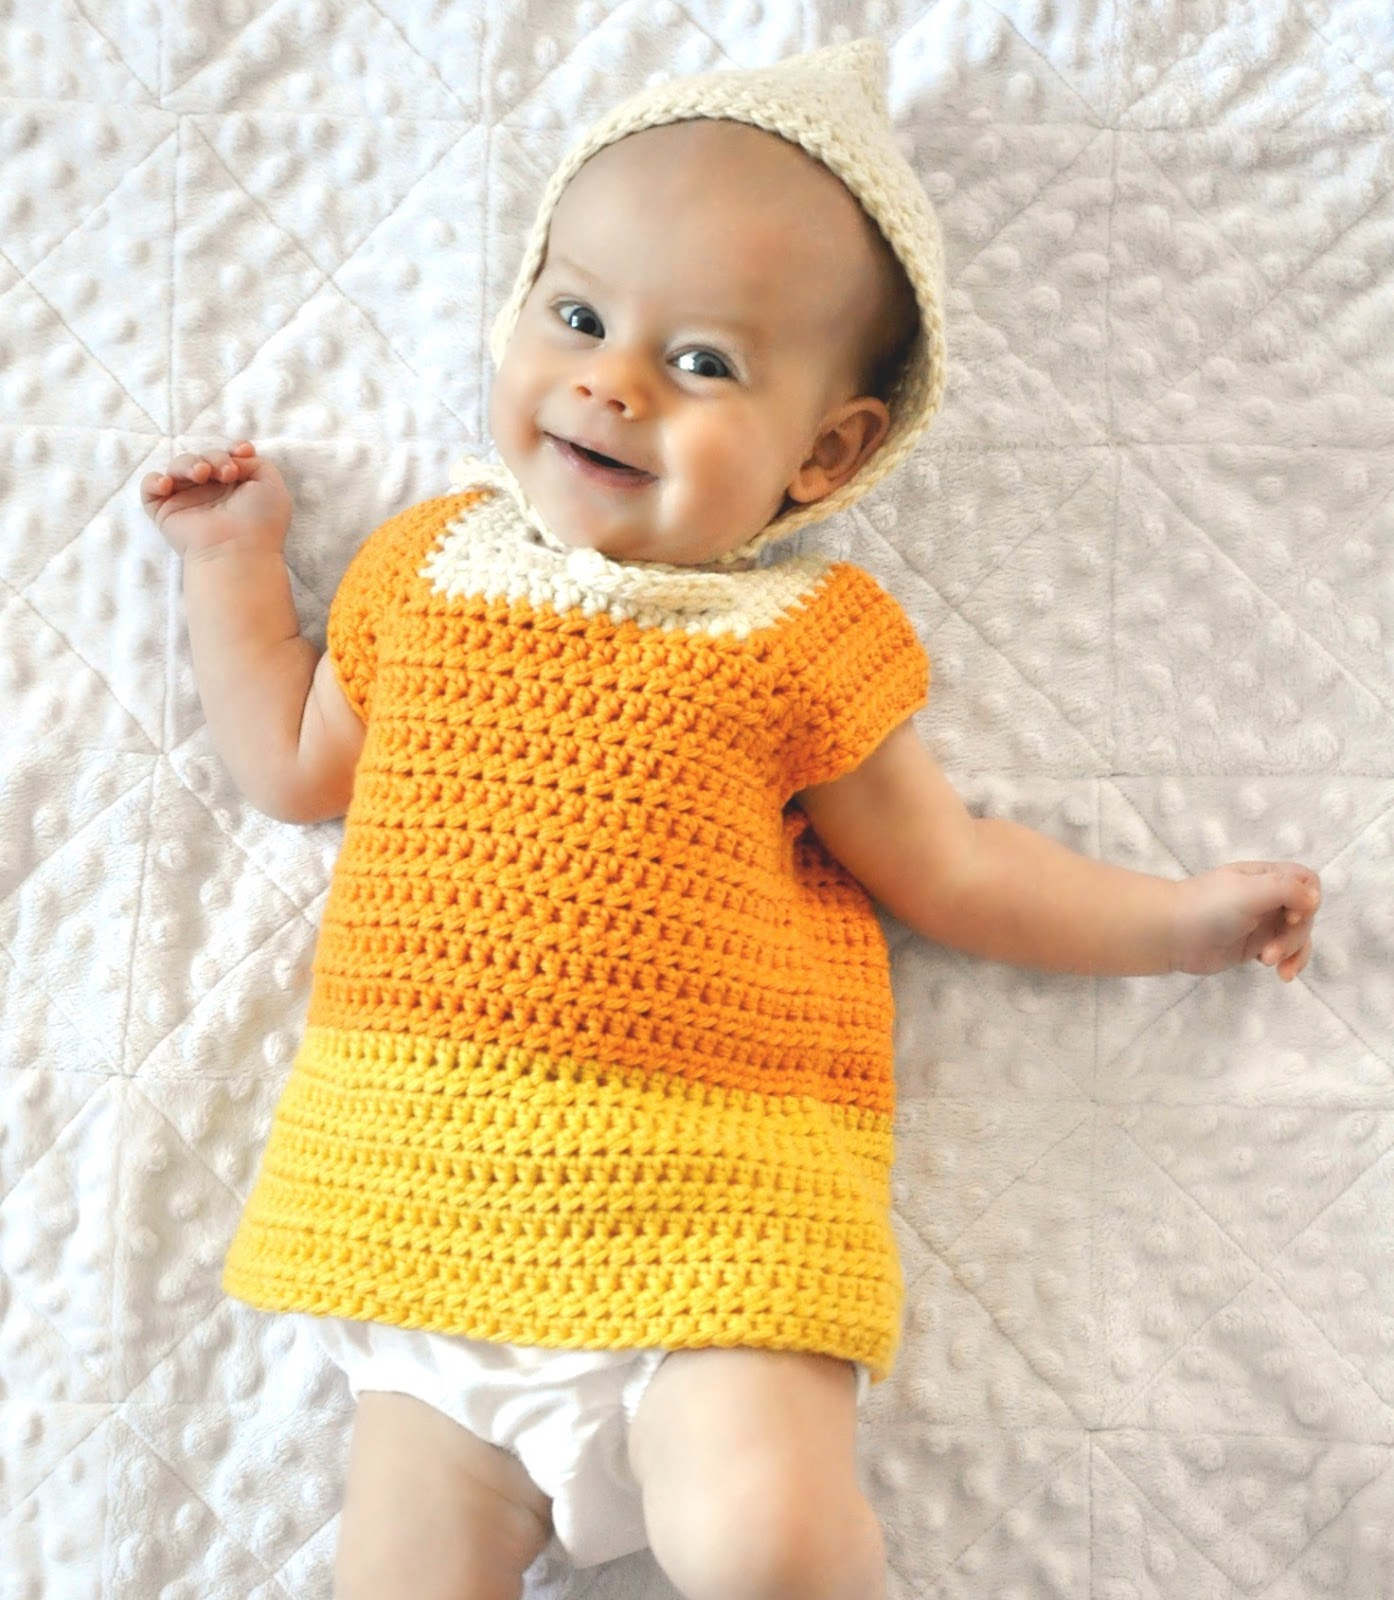 Ball hank n skein free pattern candy corn crochet costume photo credit pam dajczak bankloansurffo Image collections